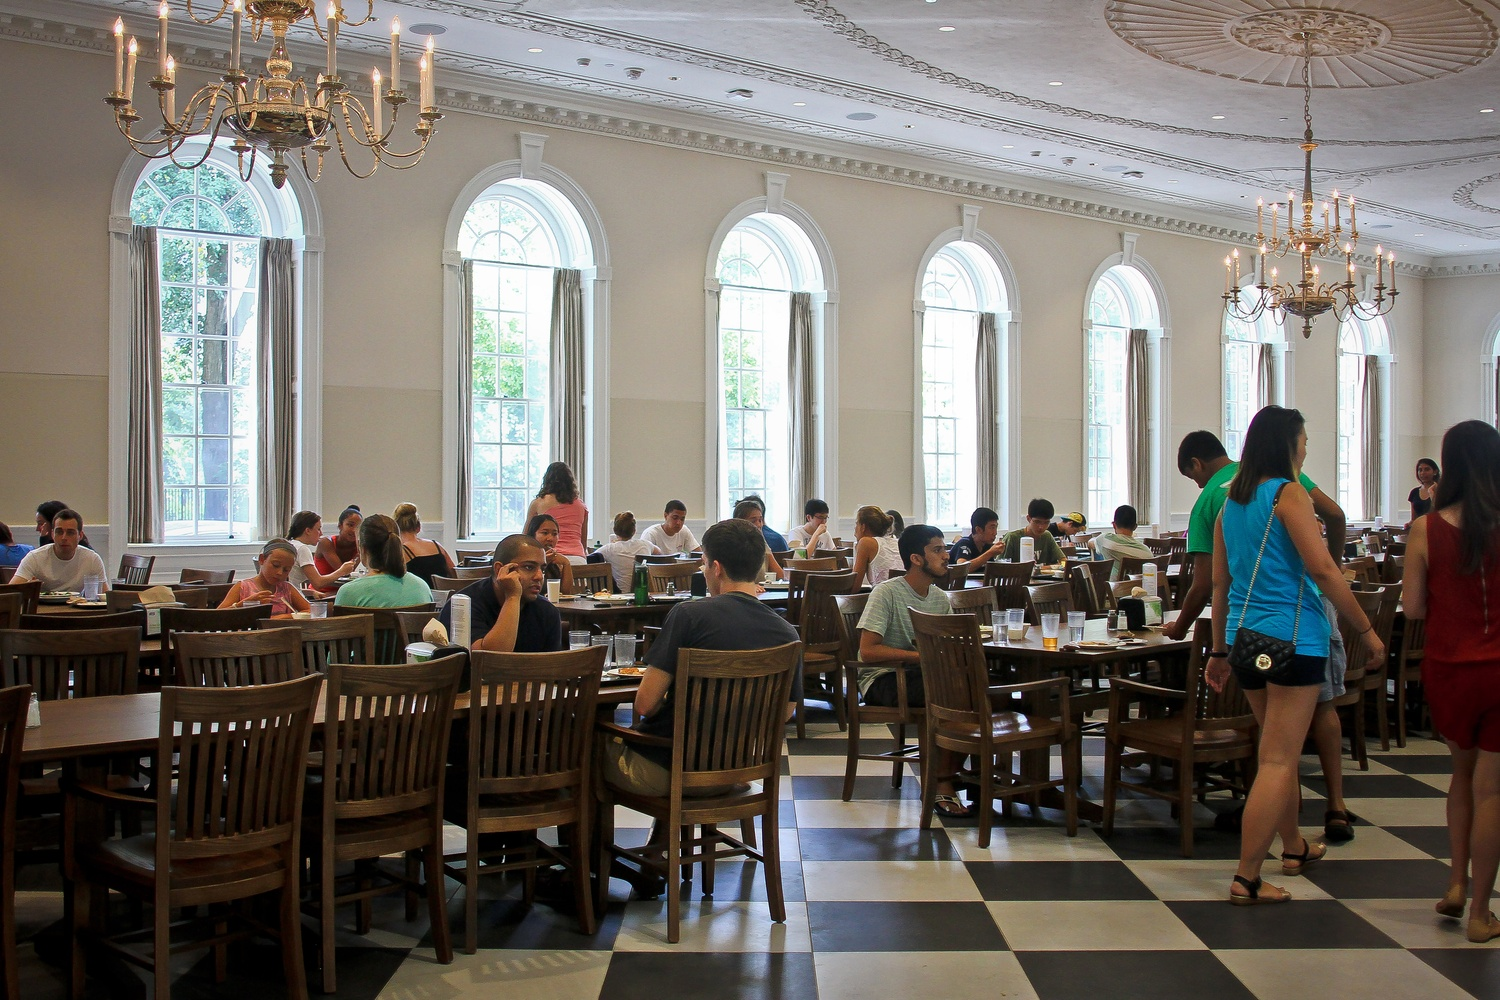 The renovation of Leverett's McKinlock Hall included the first dining hall renovation of the House Renewal process.